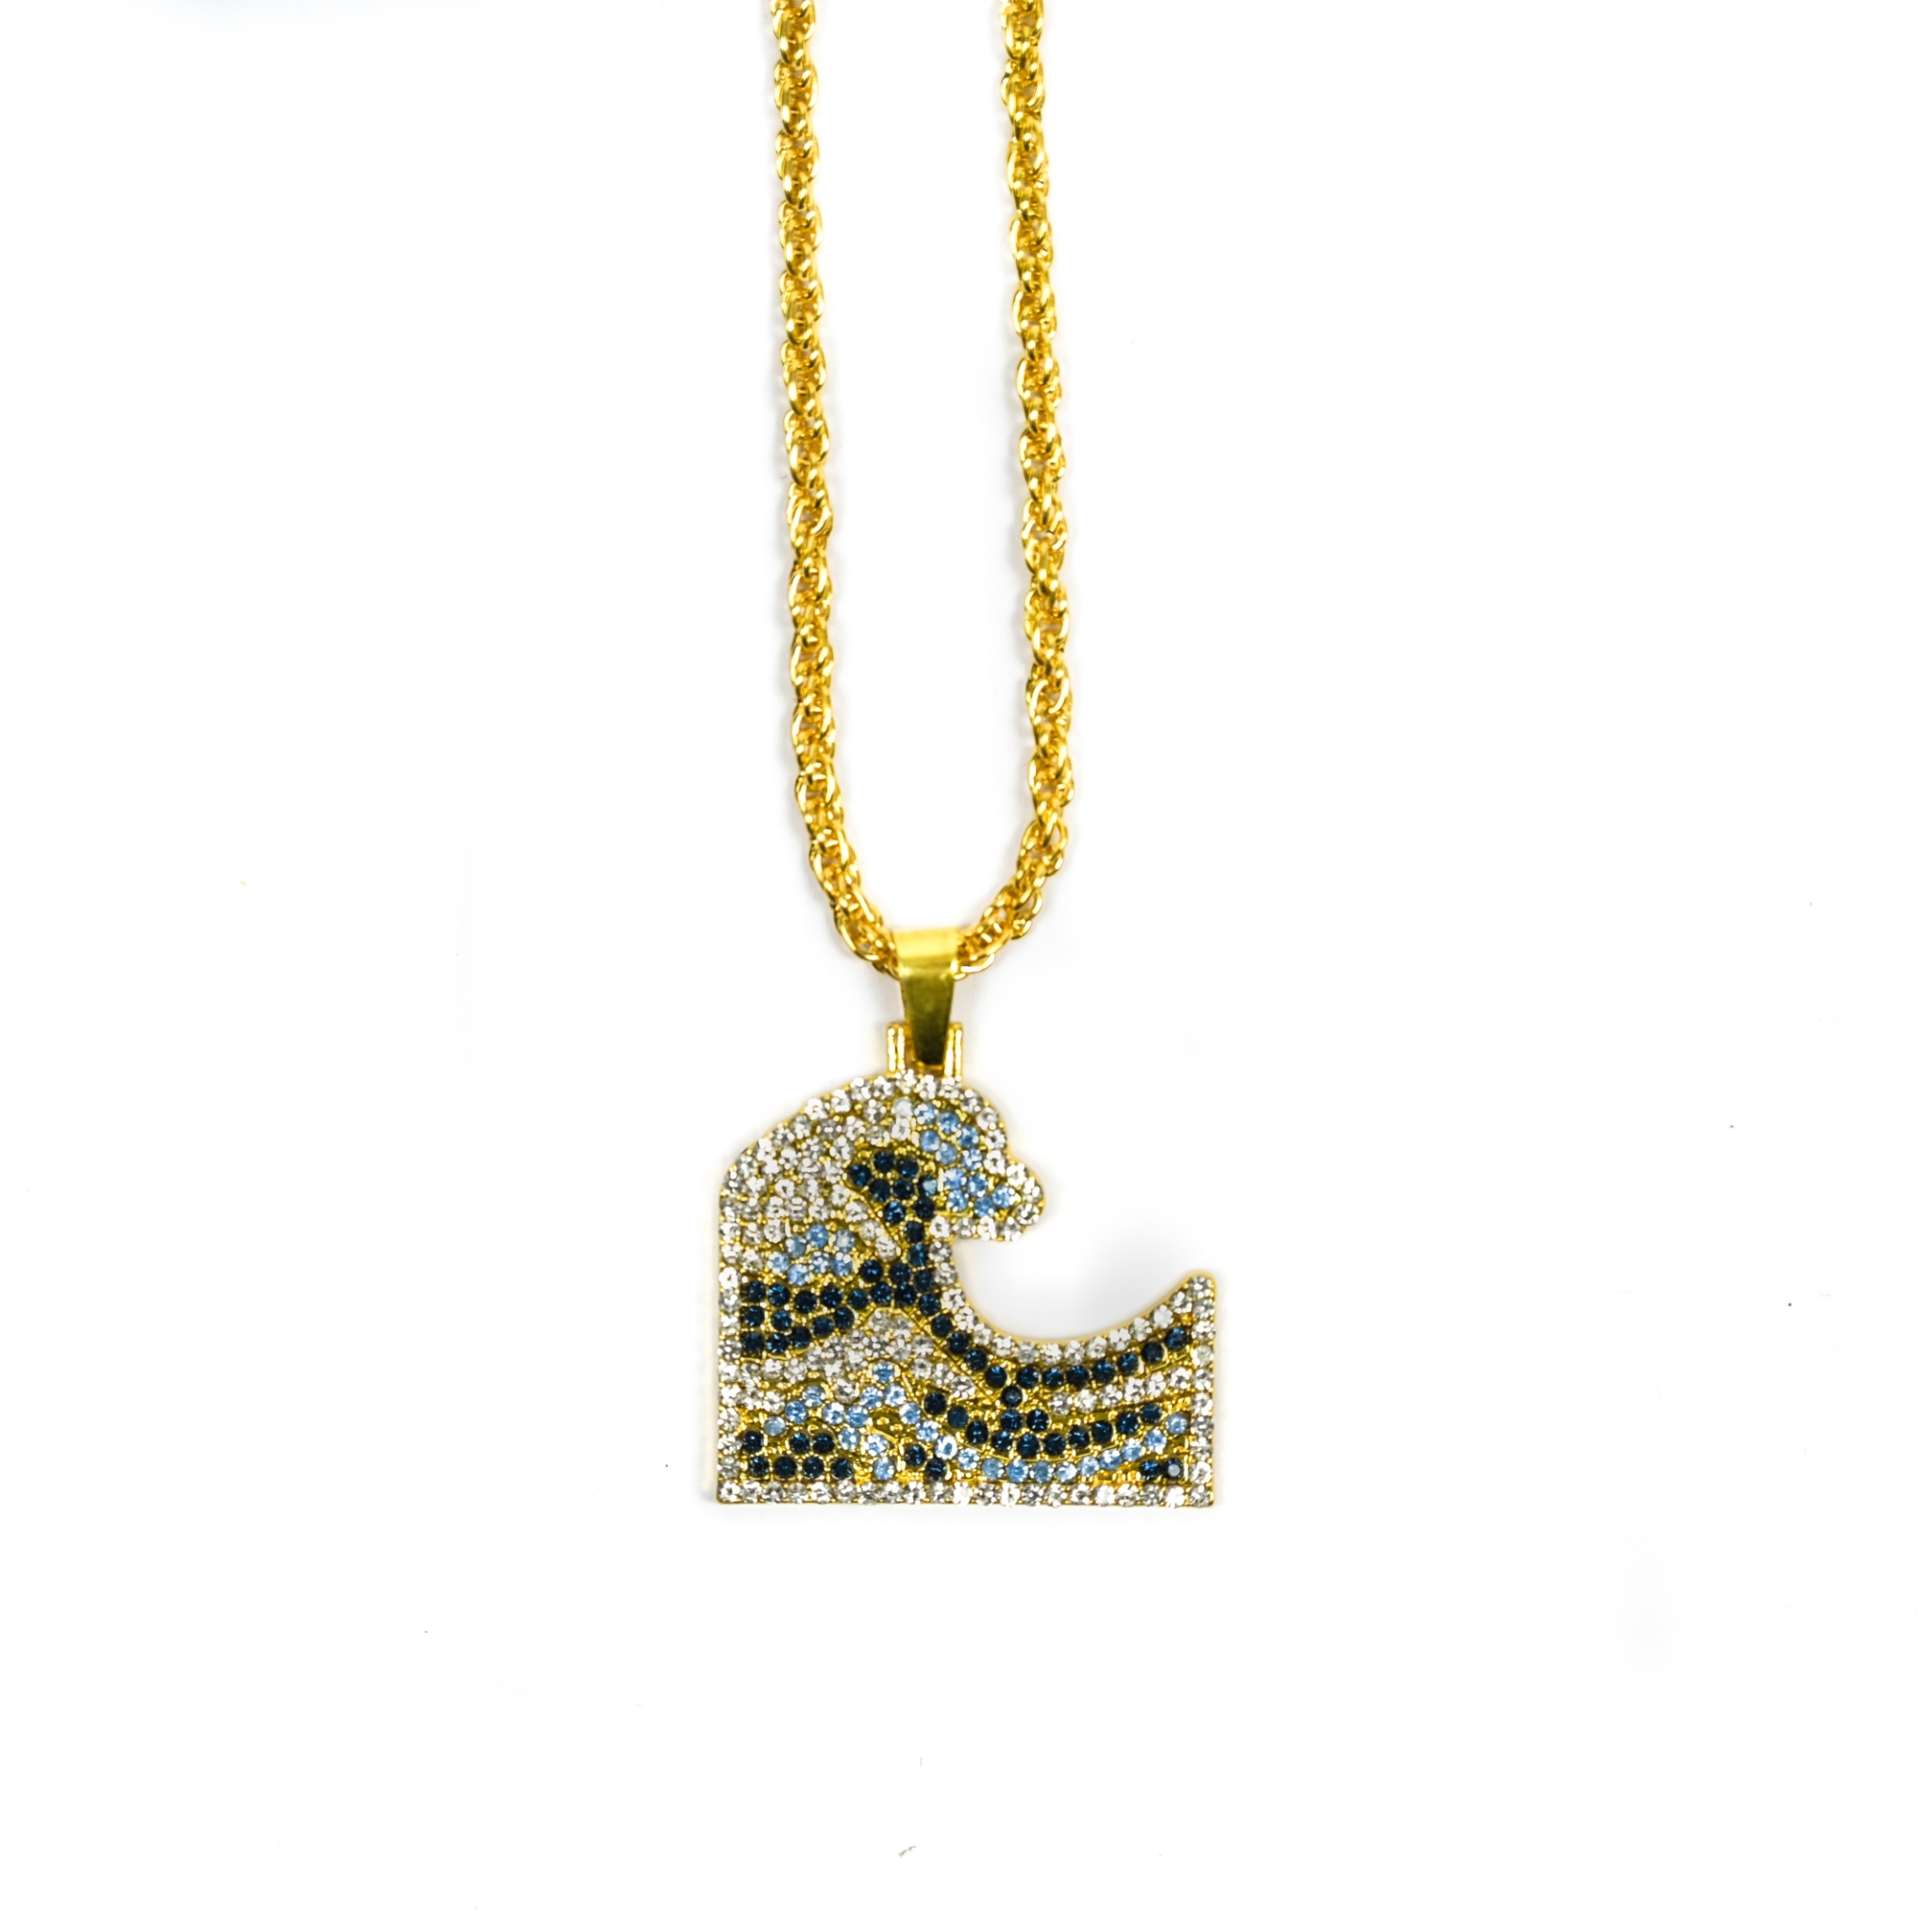 SOLASTA THE GREAT WAVE OF KANAGAWA NECKLACE GOLD